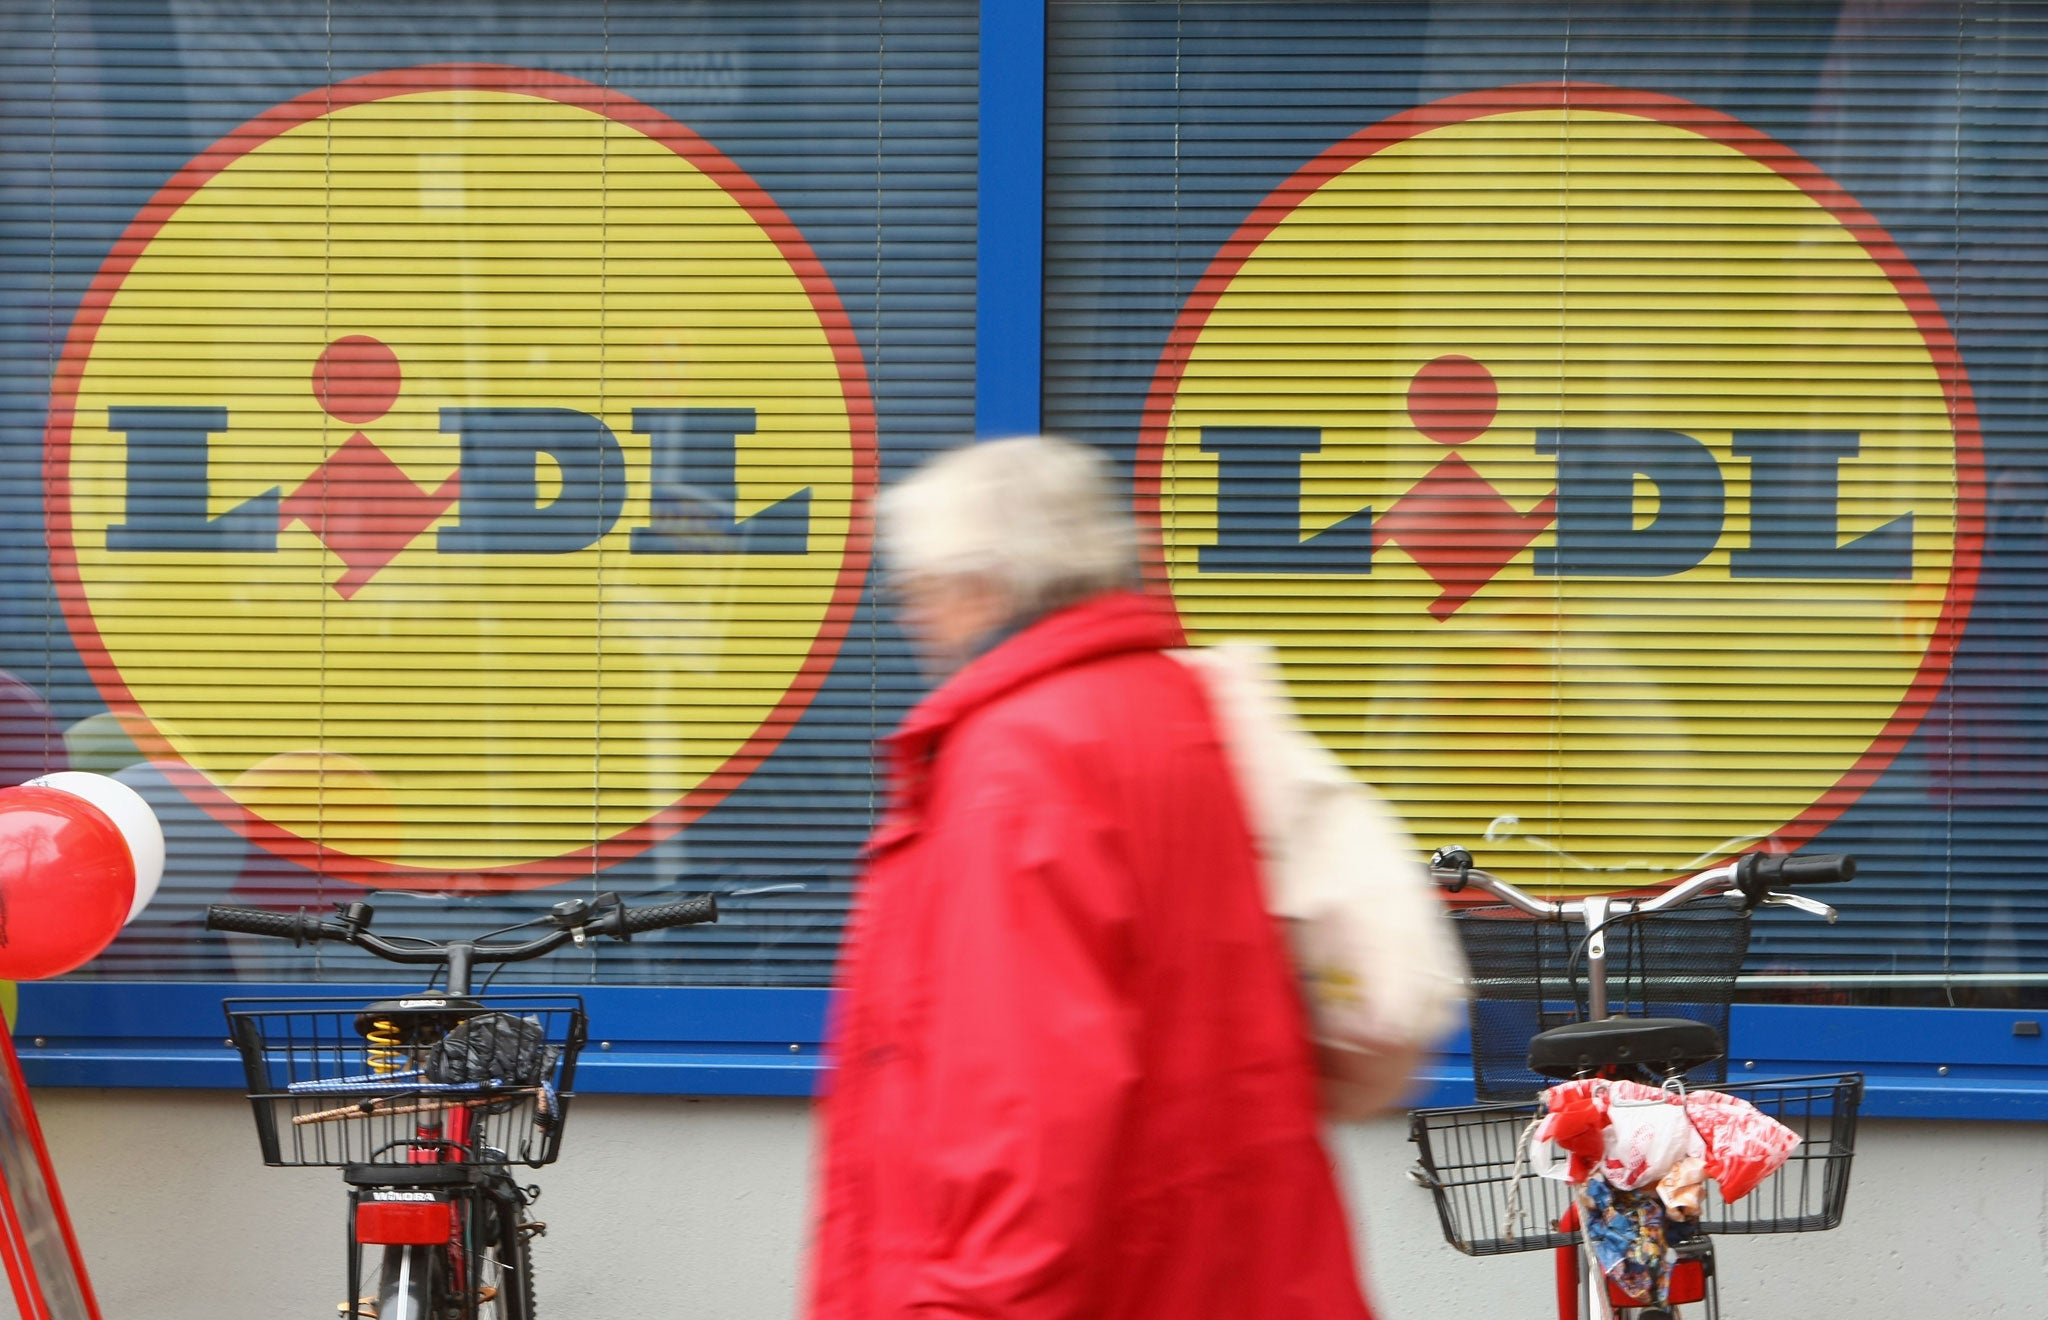 Lidl The Threat Of New Entrants Is High When There Are